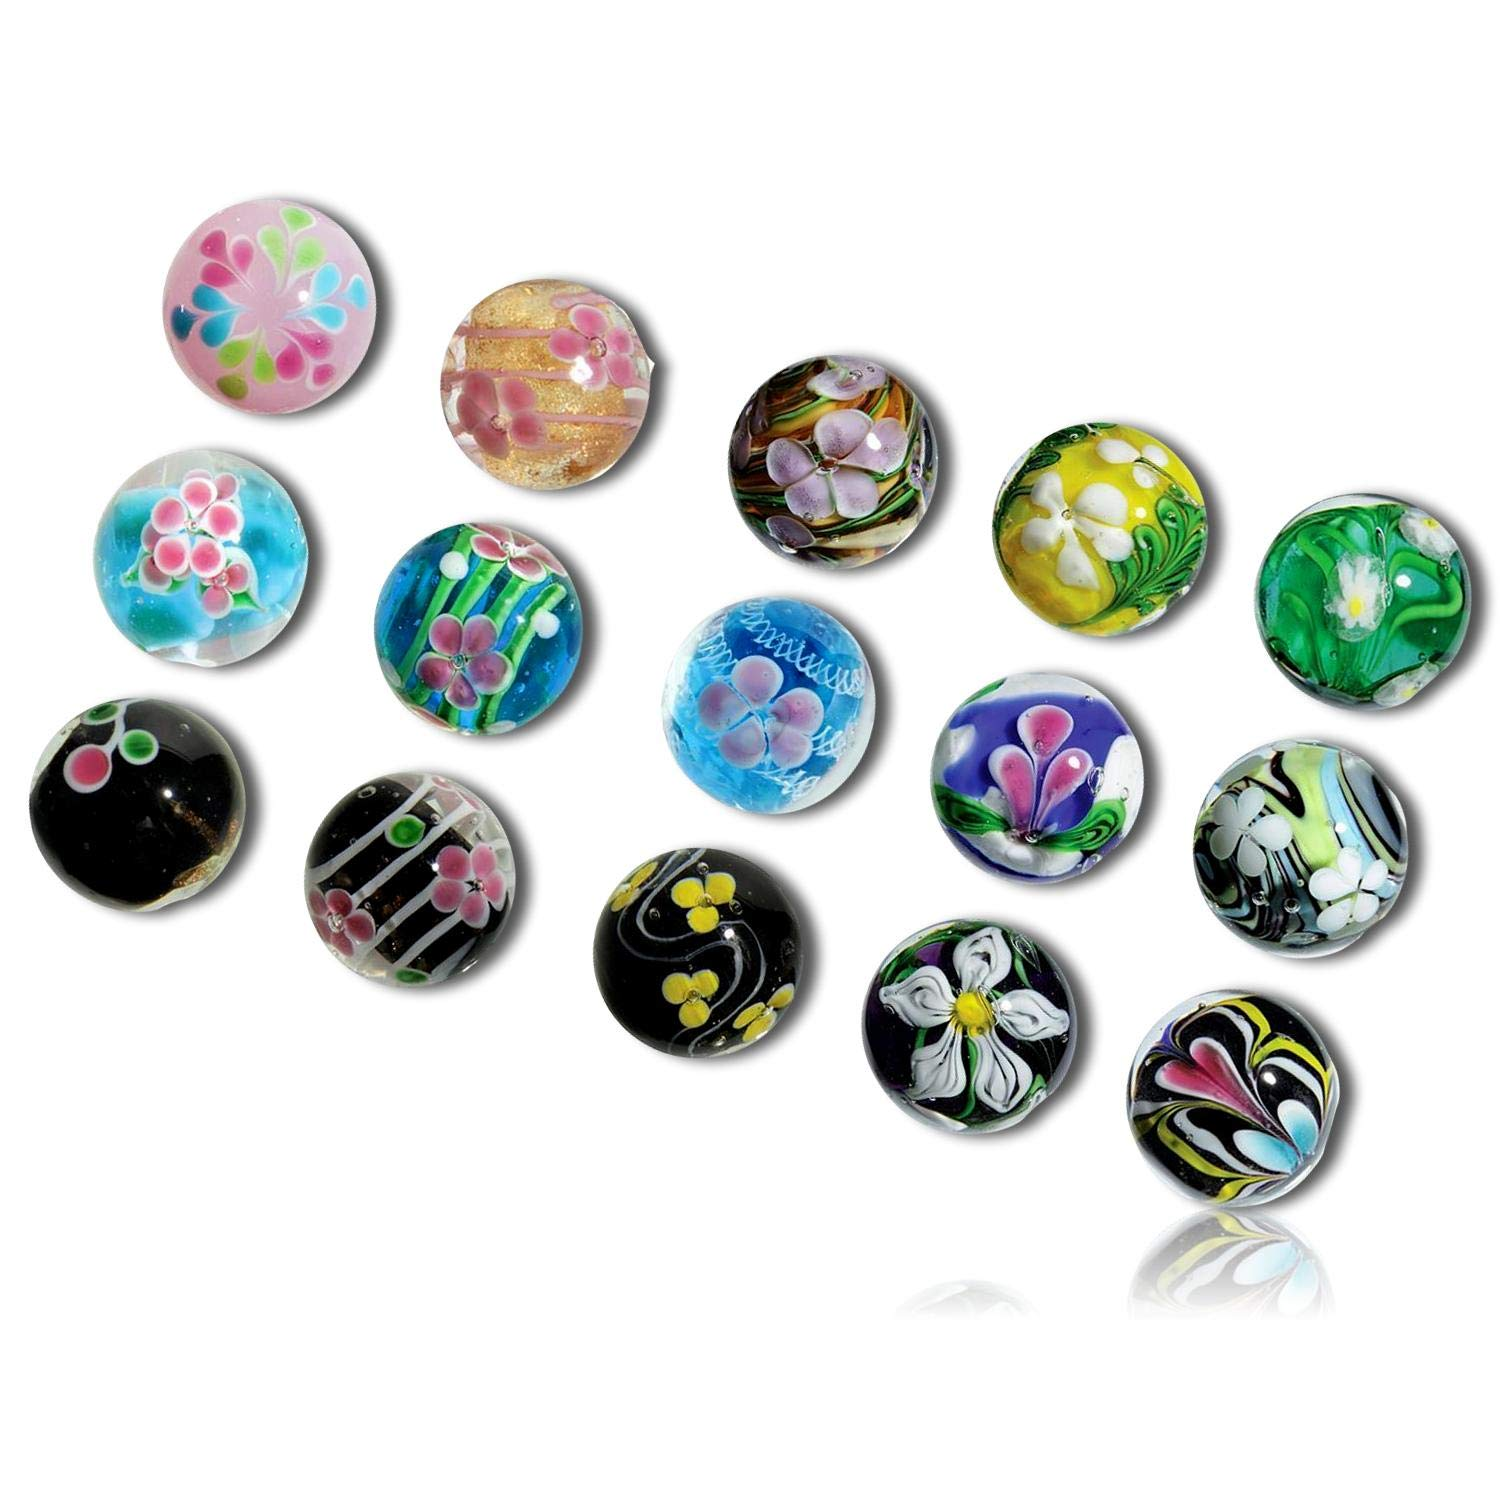 """Custom & Decorative {5/8'' Inch} 15 Mid-Size """"Round"""" Glass Marbles w/Beautifully Designed Handmade Transparent Variety Collectible Art Artistic Swirls Glitter Style [Multicolor] w/Stand + Certificate"""